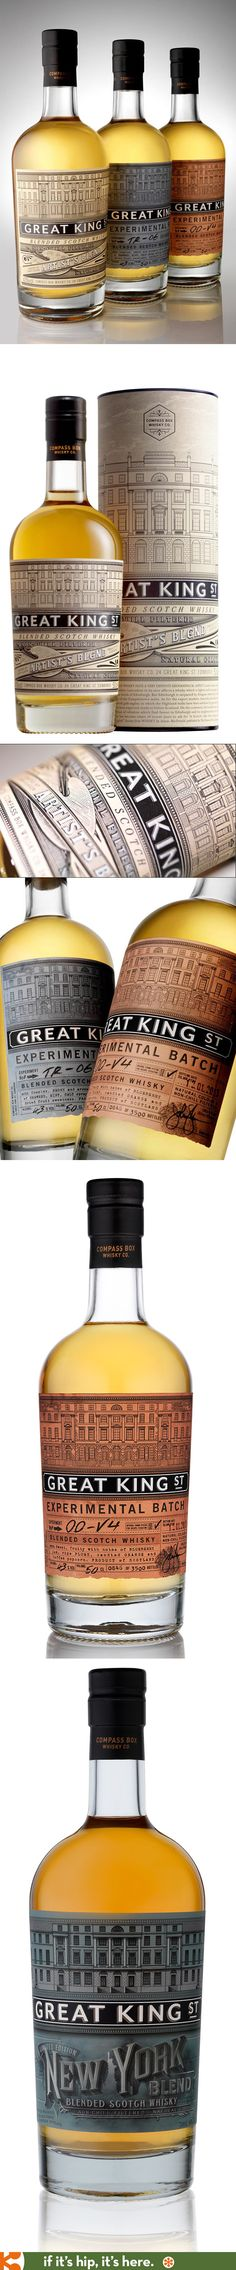 Great King Street Whiskies - Artist's Blend and Experimental Batch blends 1 and 2.